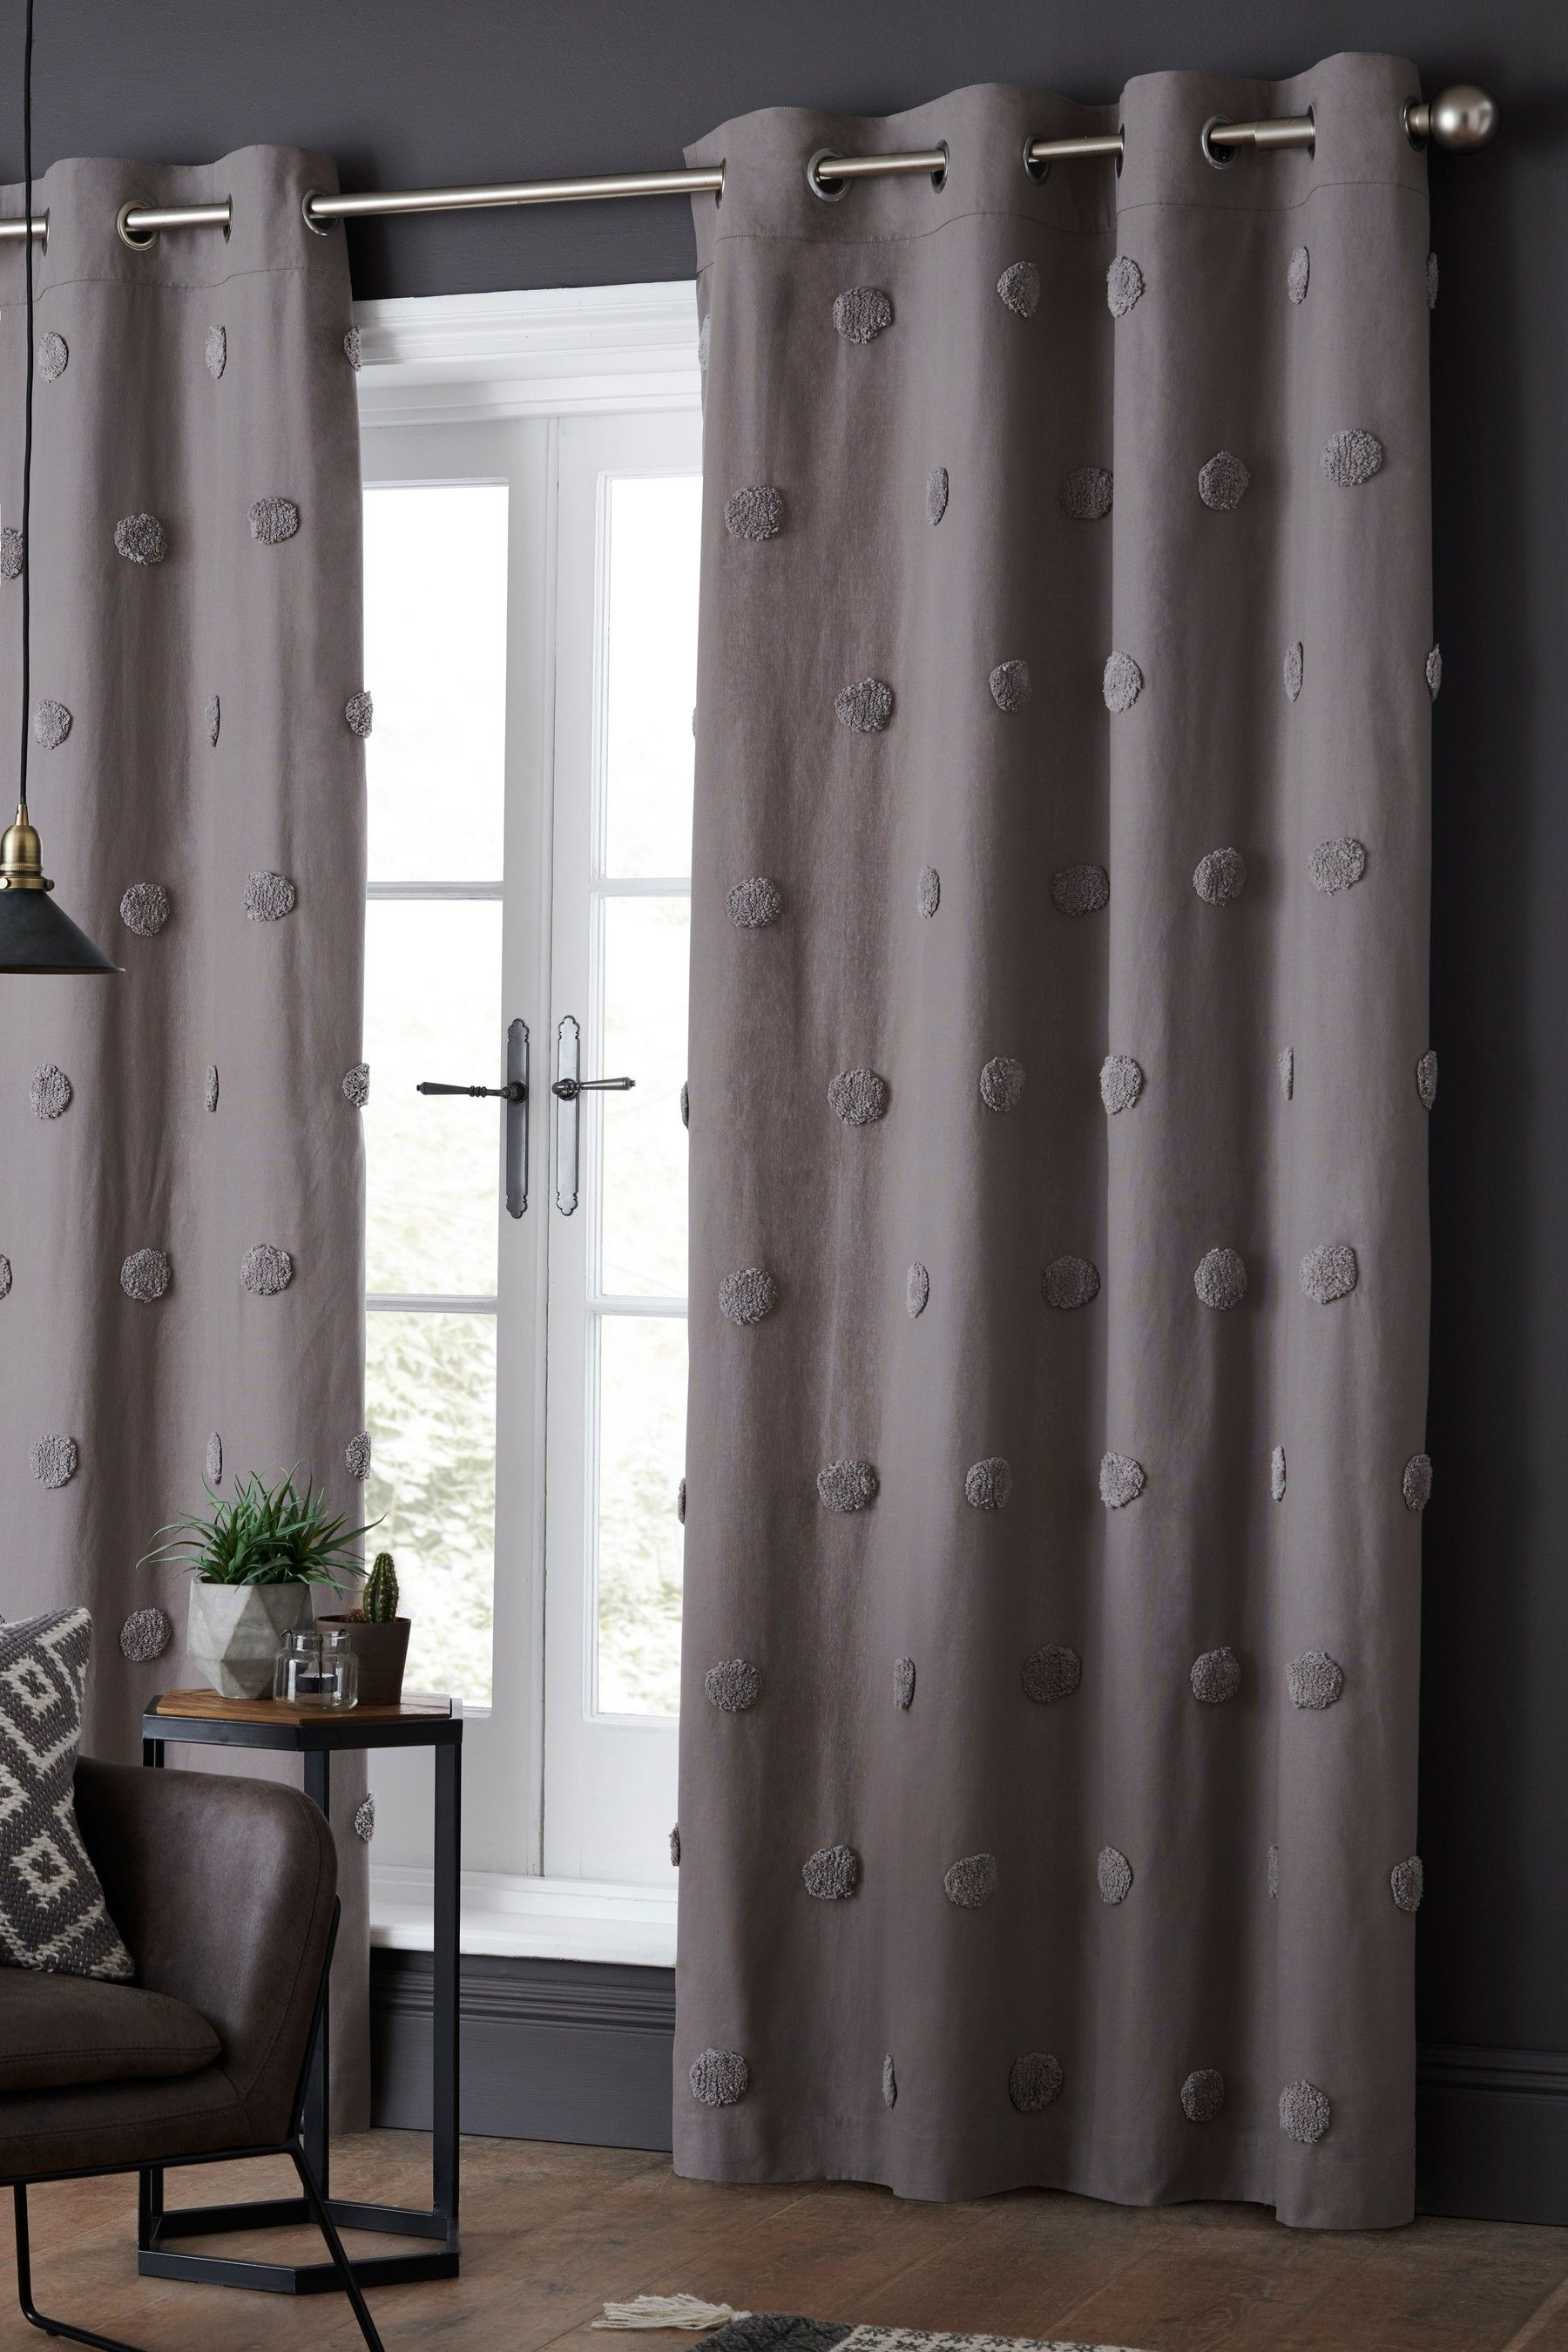 Tufted Pom Pom Eyelet Curtains In 2020 Curtains Grey Curtains Home Curtains